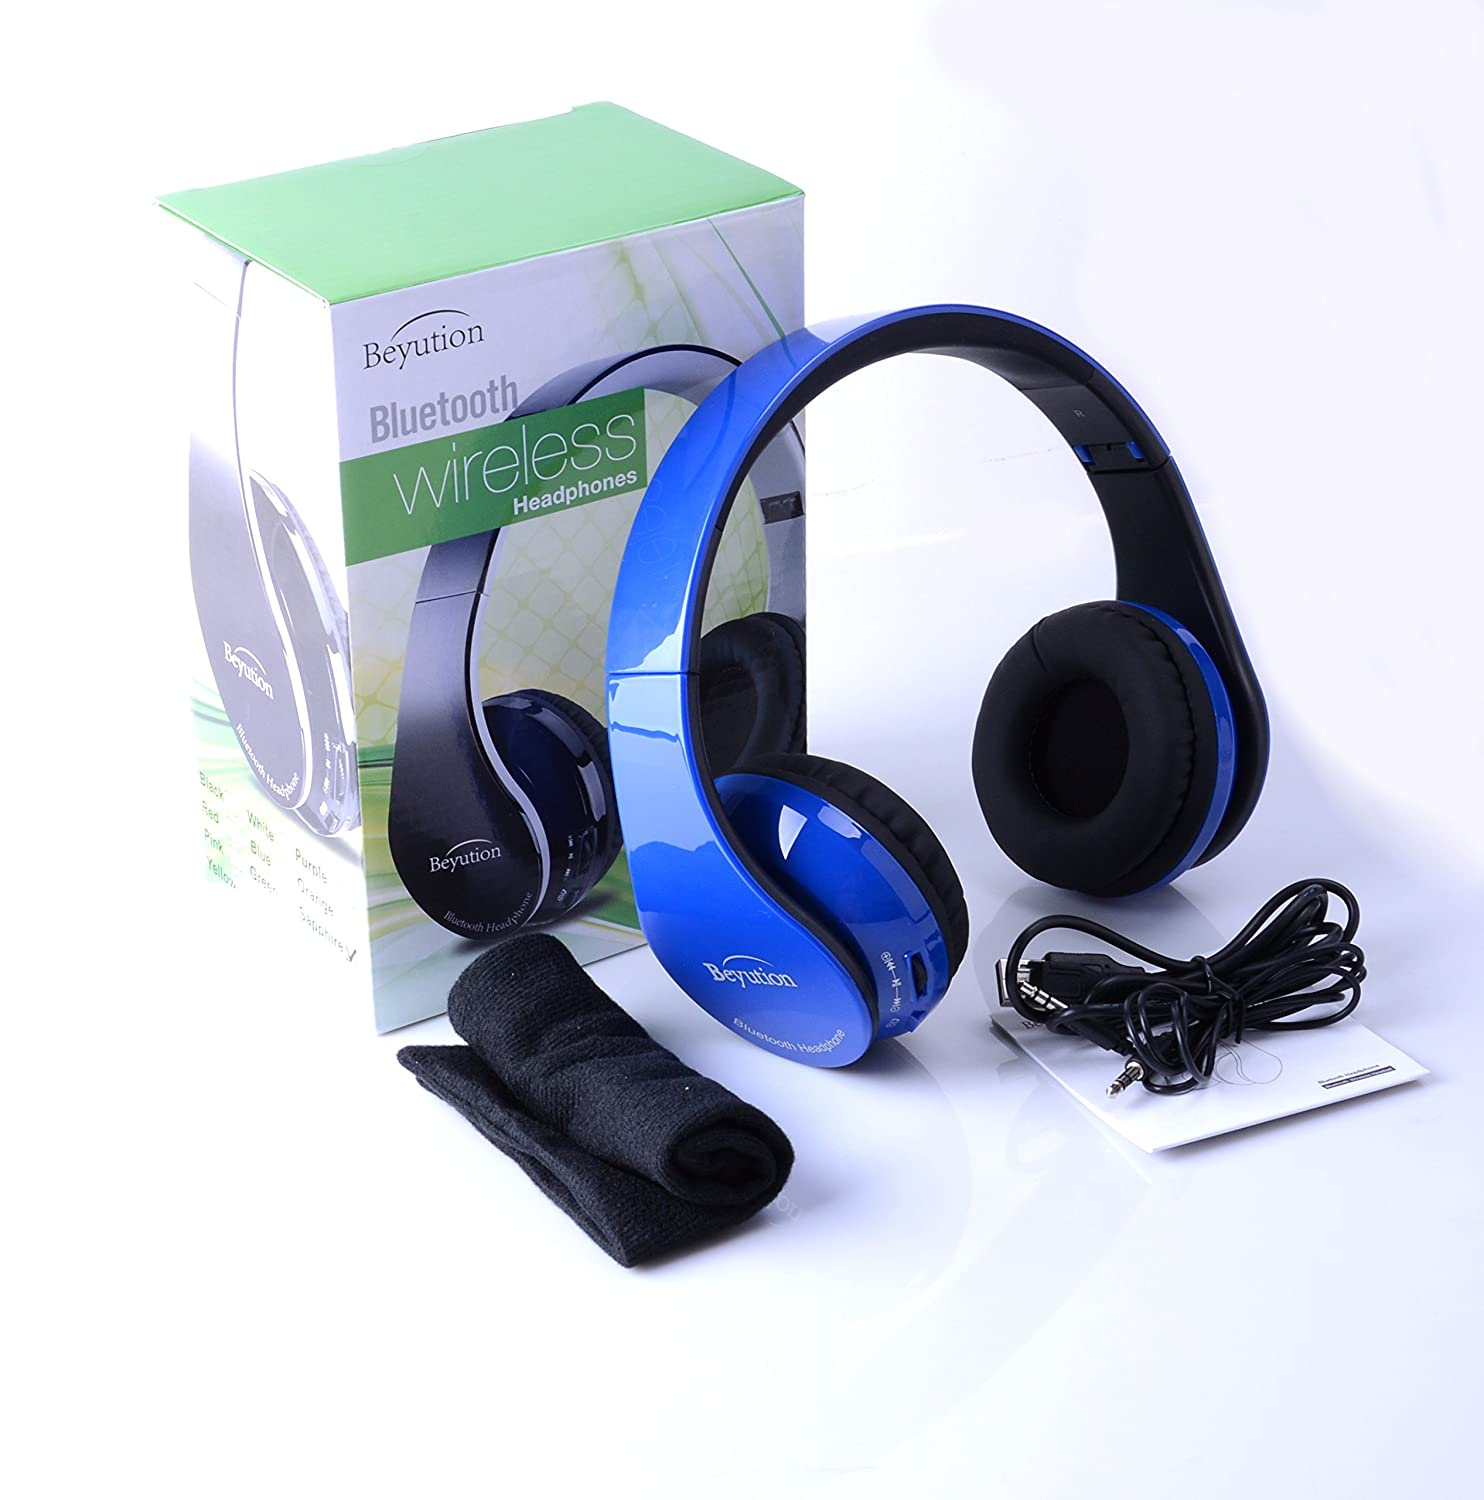 все цены на New Royalblue color Beyution513 Hi-Fi Over-ear Stereo Bluetooth Headphones--Built in Mic-phone talk with phone or listen music clearly, built Noise cancellation technology, with Retail package! онлайн